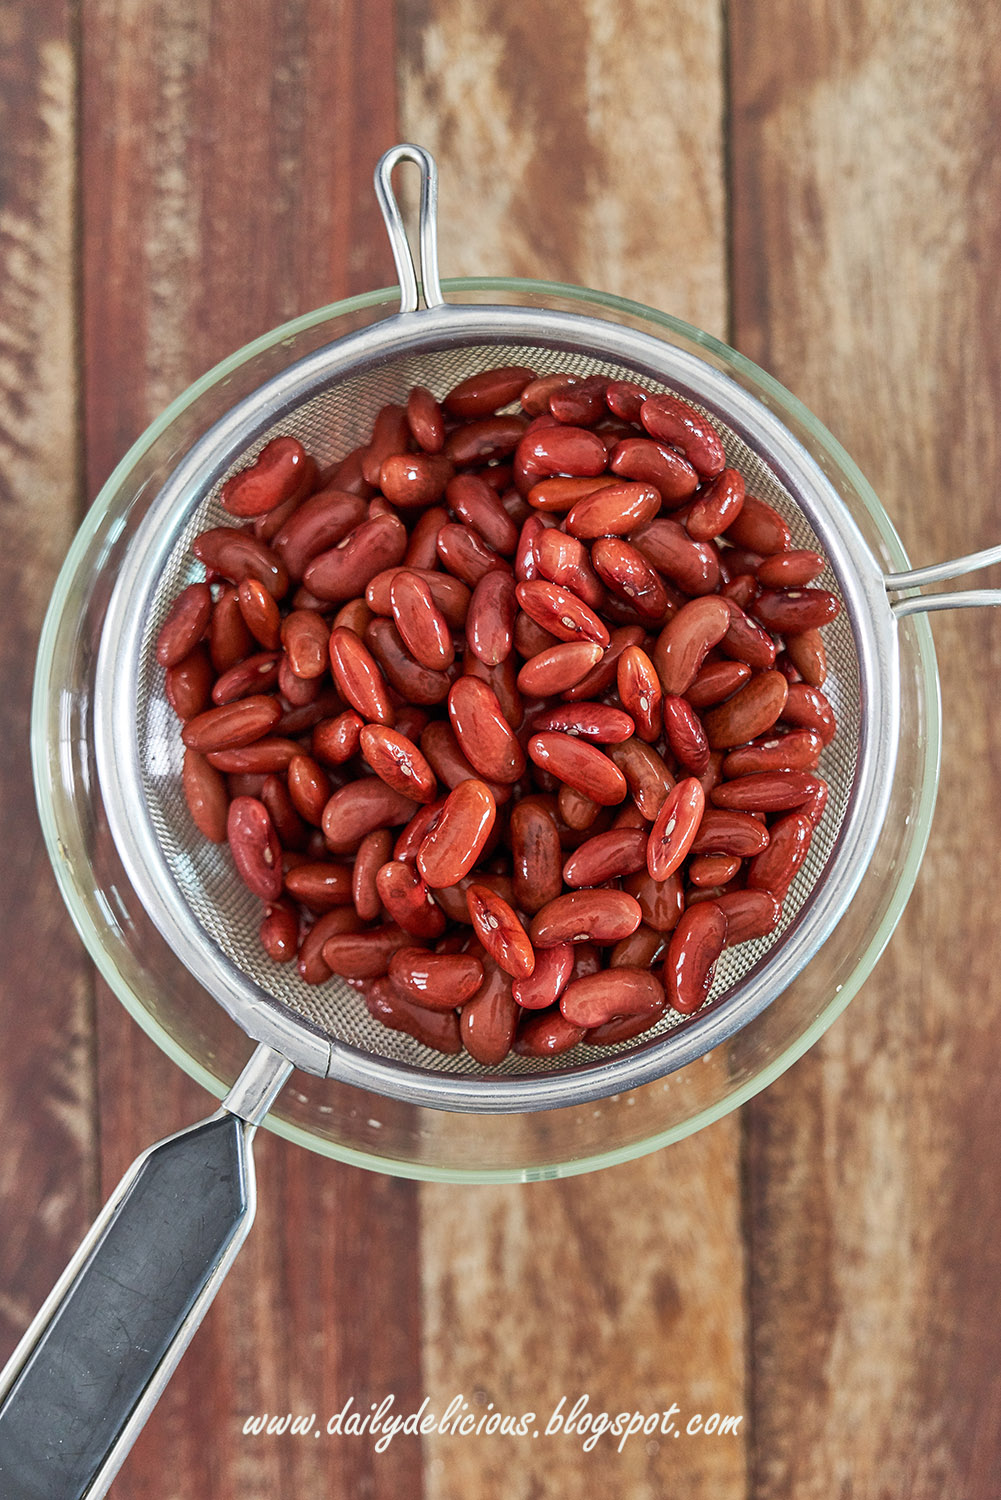 Dailydelicious U S Red Kidney Beans Caprese Inspired Salad